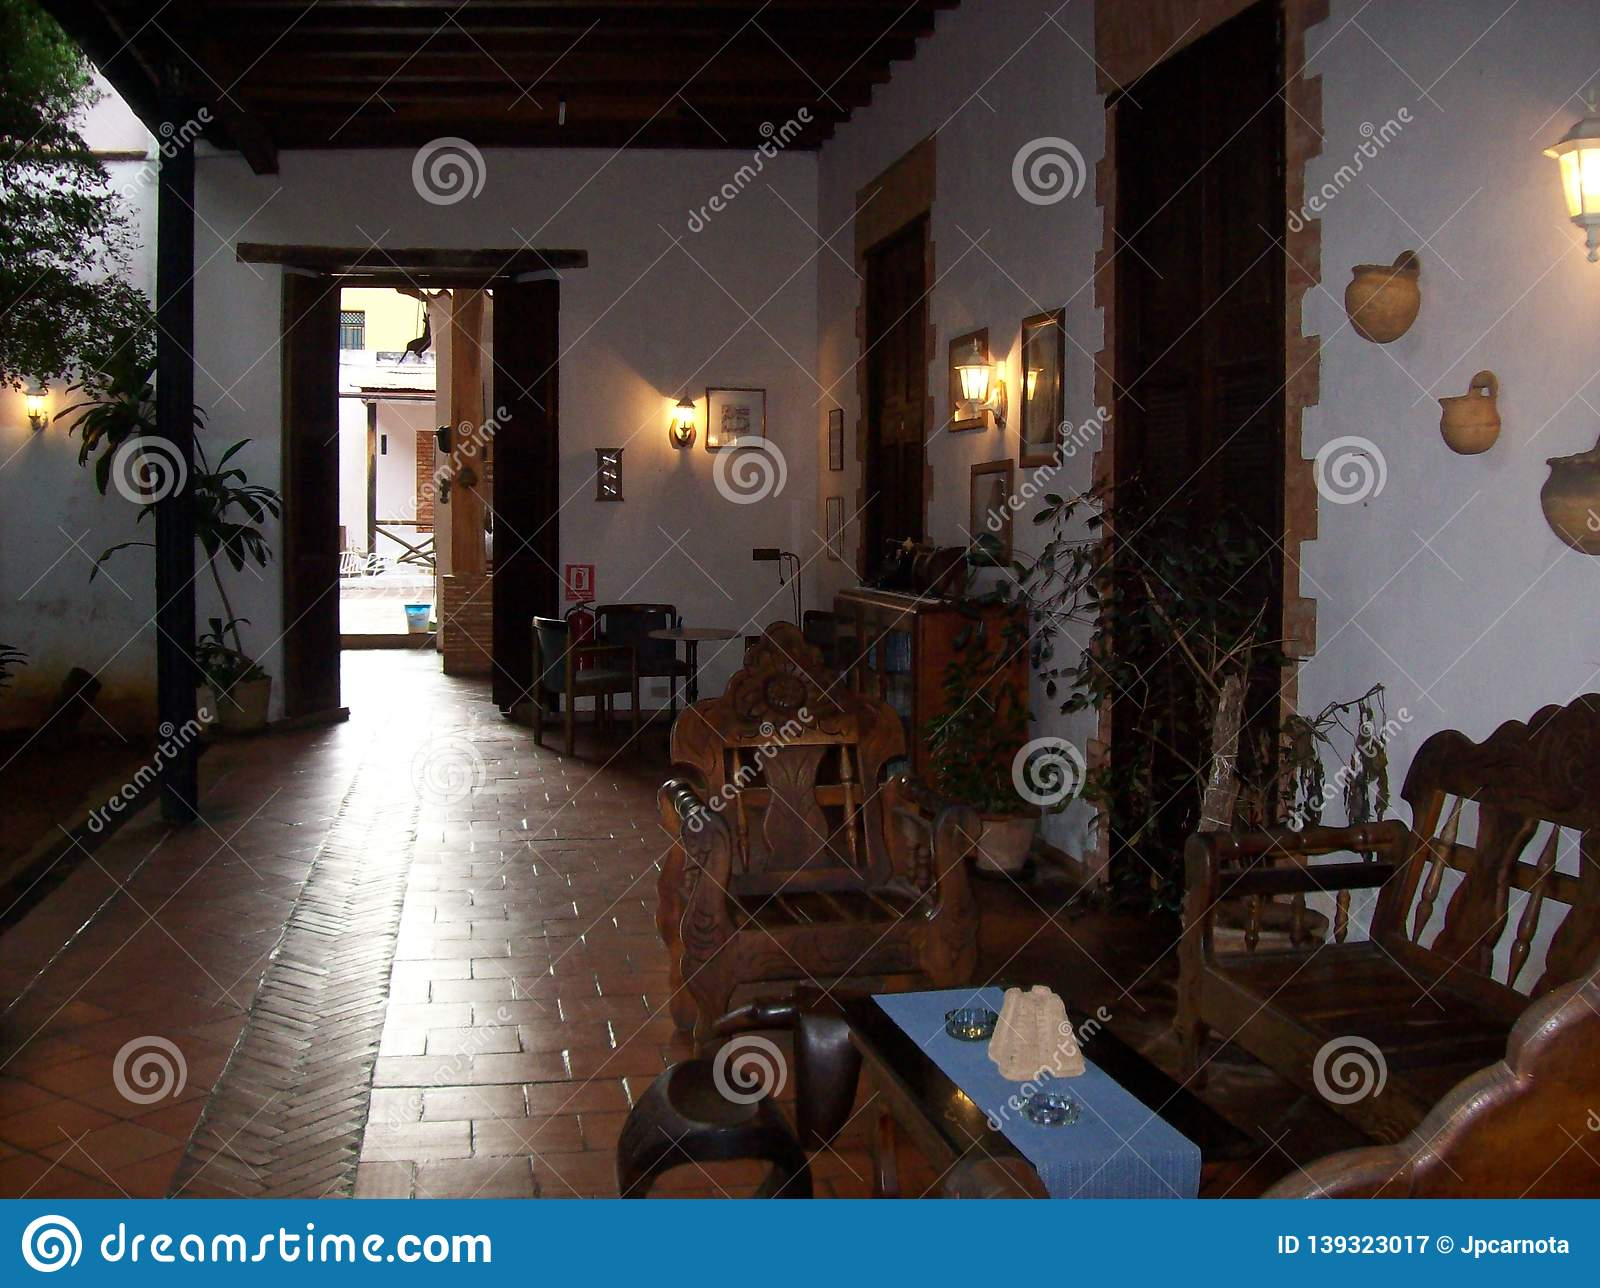 Interior Of A Colonial House In The Spanish Style In Venezuela South America Editorial Photography Image Of South Interior 139323017,Covered Backyard Bbq Area Design Ideas